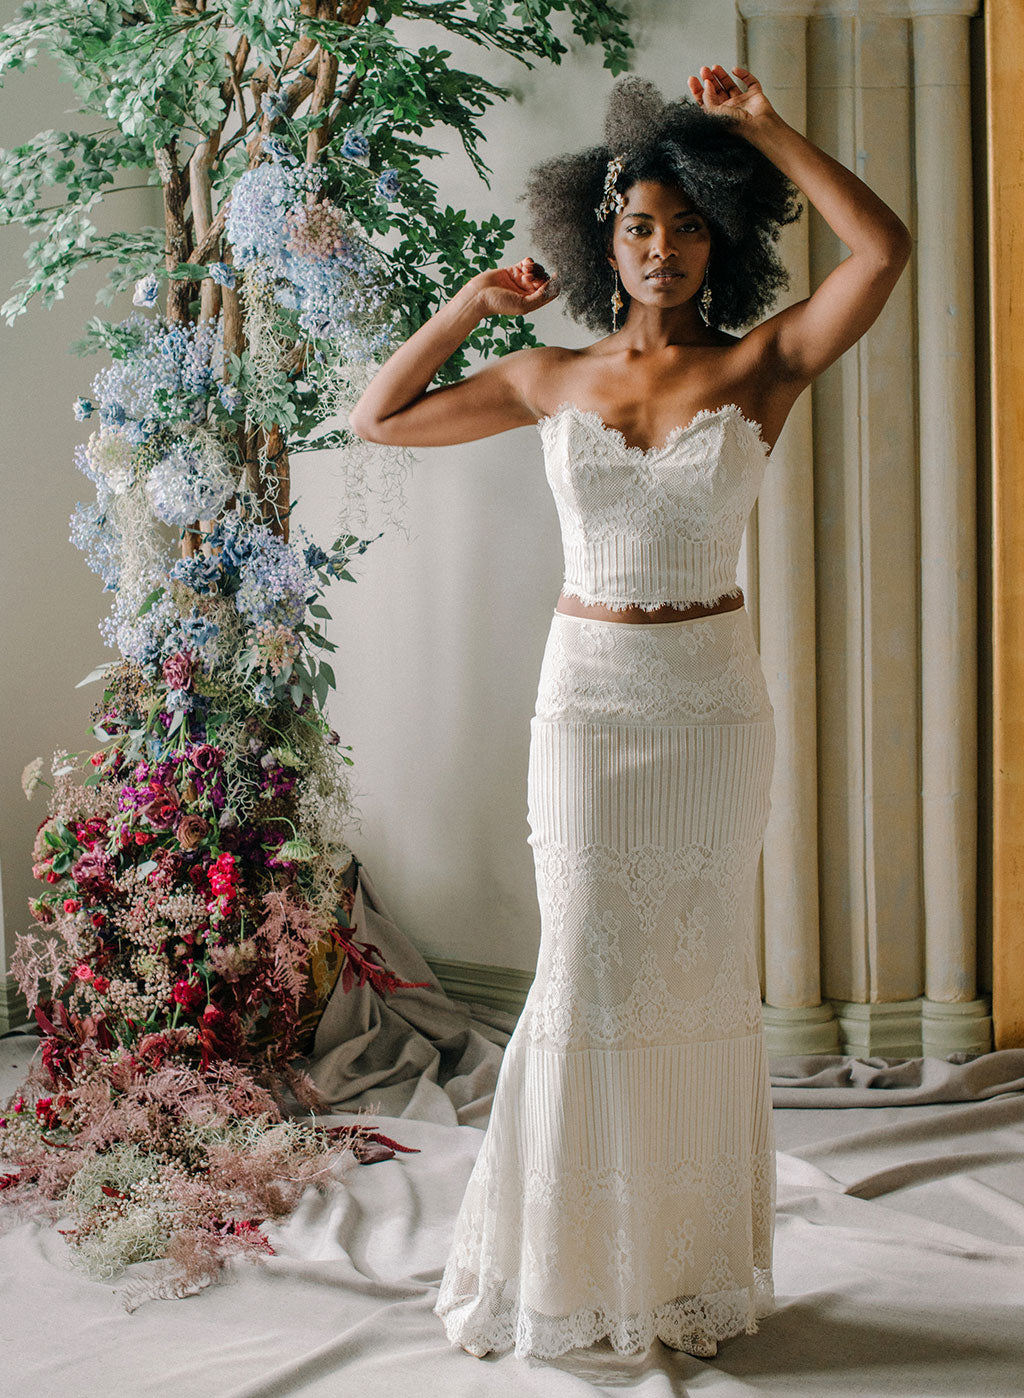 Antoinette Lace Bustier and Long Skirt Claire Pettibone Ready to Wear Bridal Separates